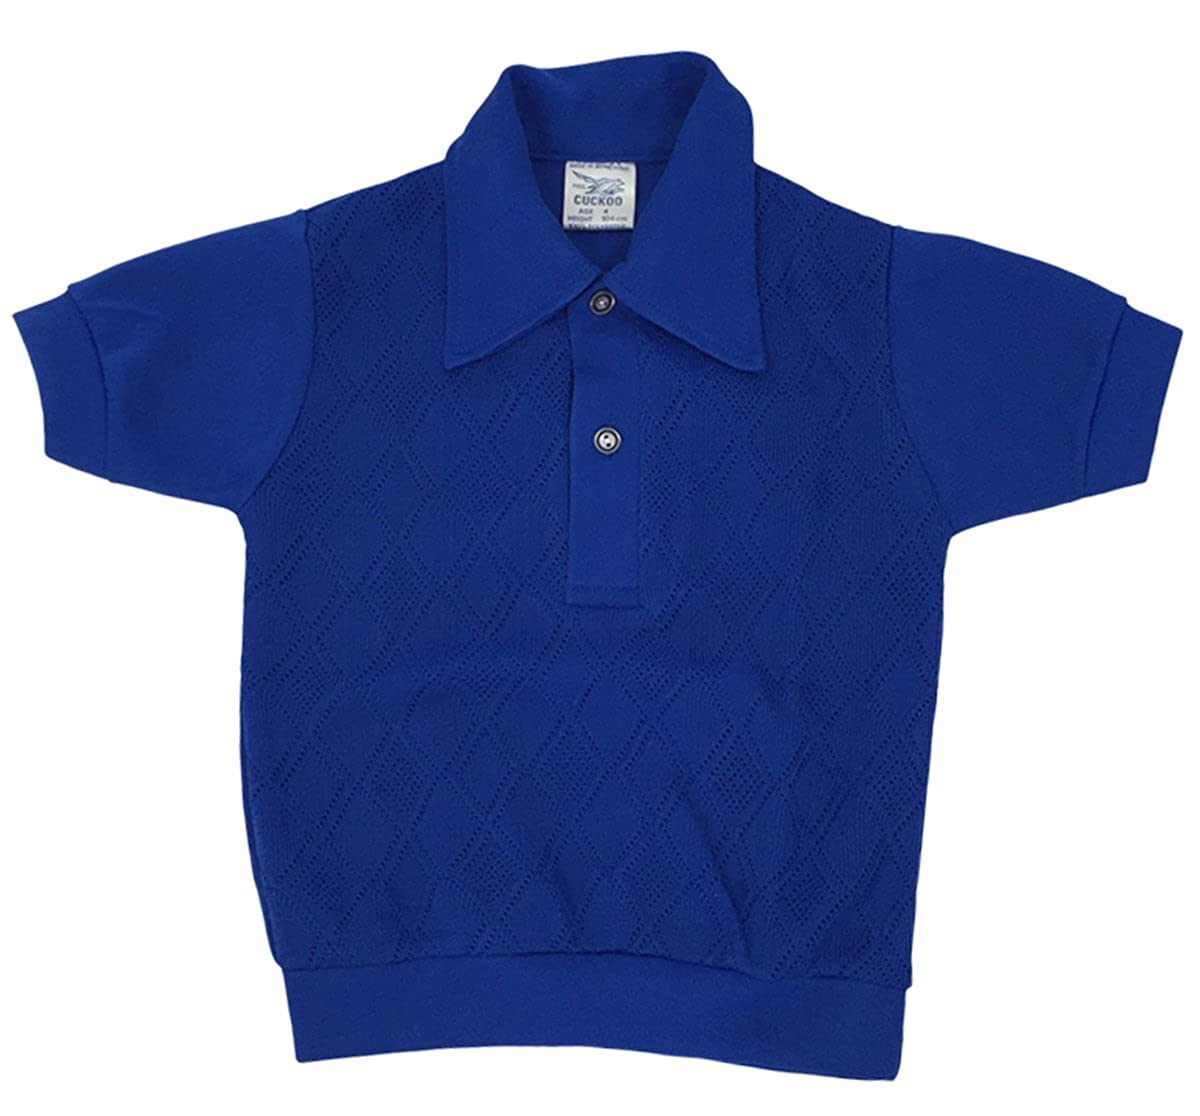 Boys Vintage Self Colour Jacquard Diamonds Knit Polo Shirt Top Sizes from 4 to 8 Years